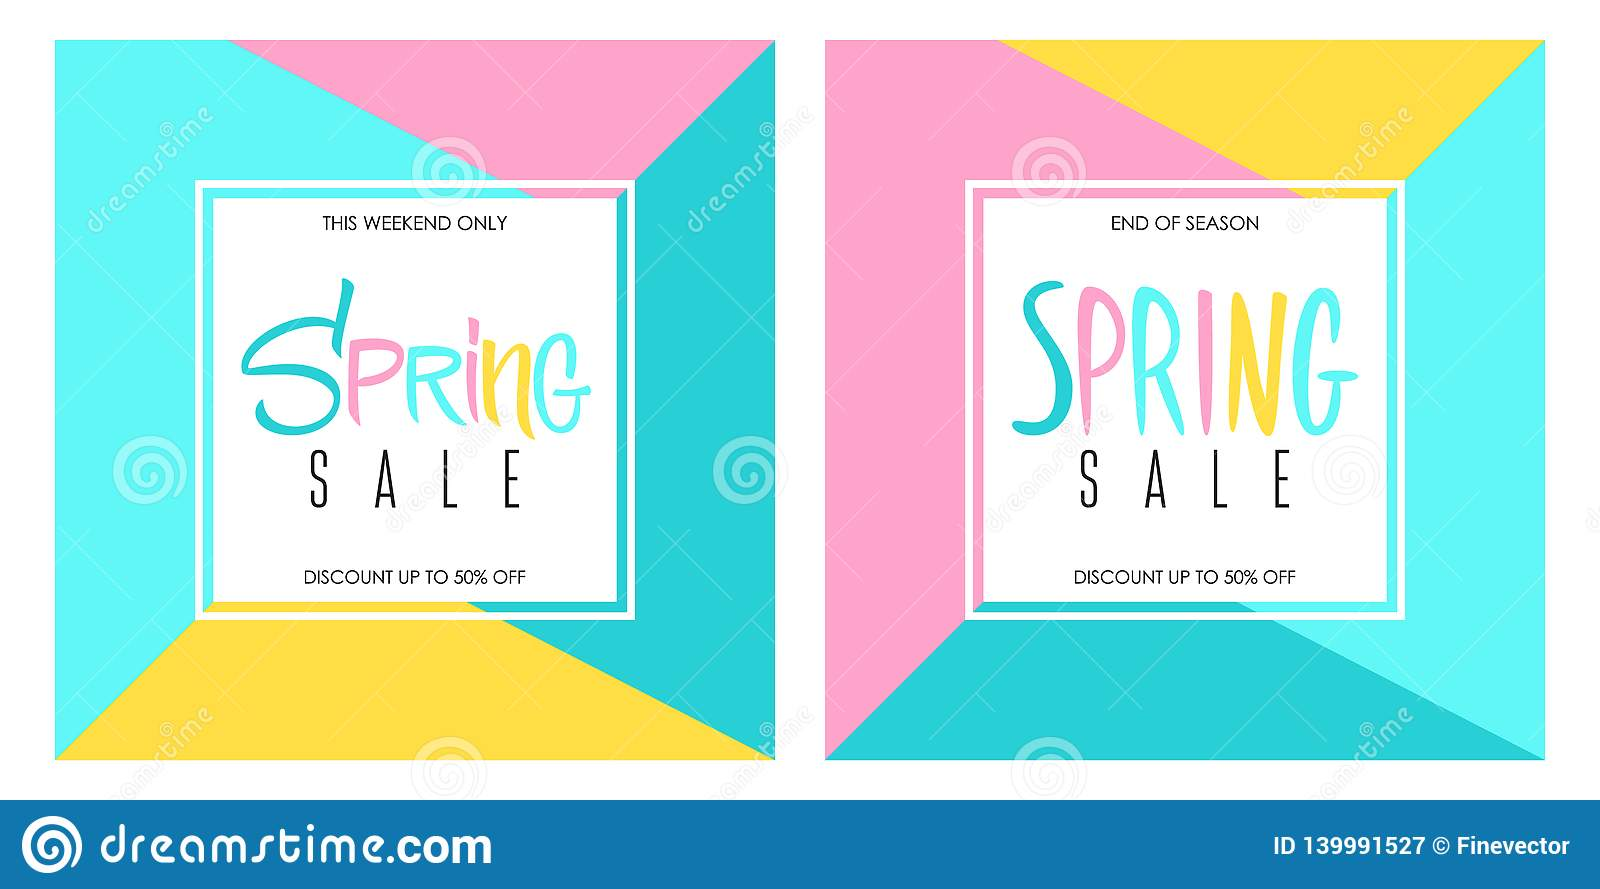 77d1d553fda Illustration  Spring Sale Special Offer Banners Set With Hand Lettering For  Springtime Shopping